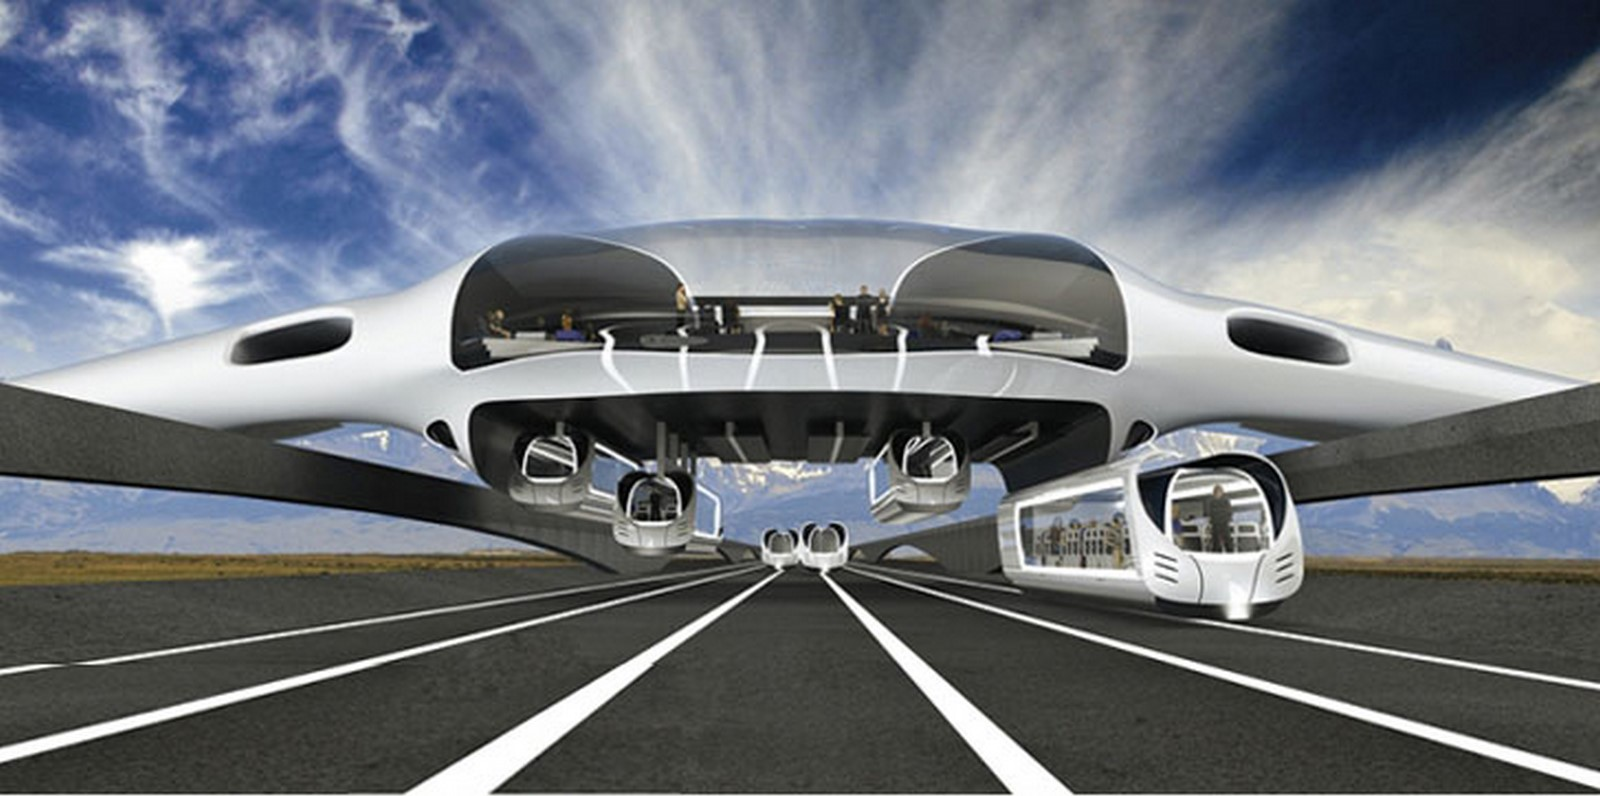 10 Transporation design from the future - Sheet6